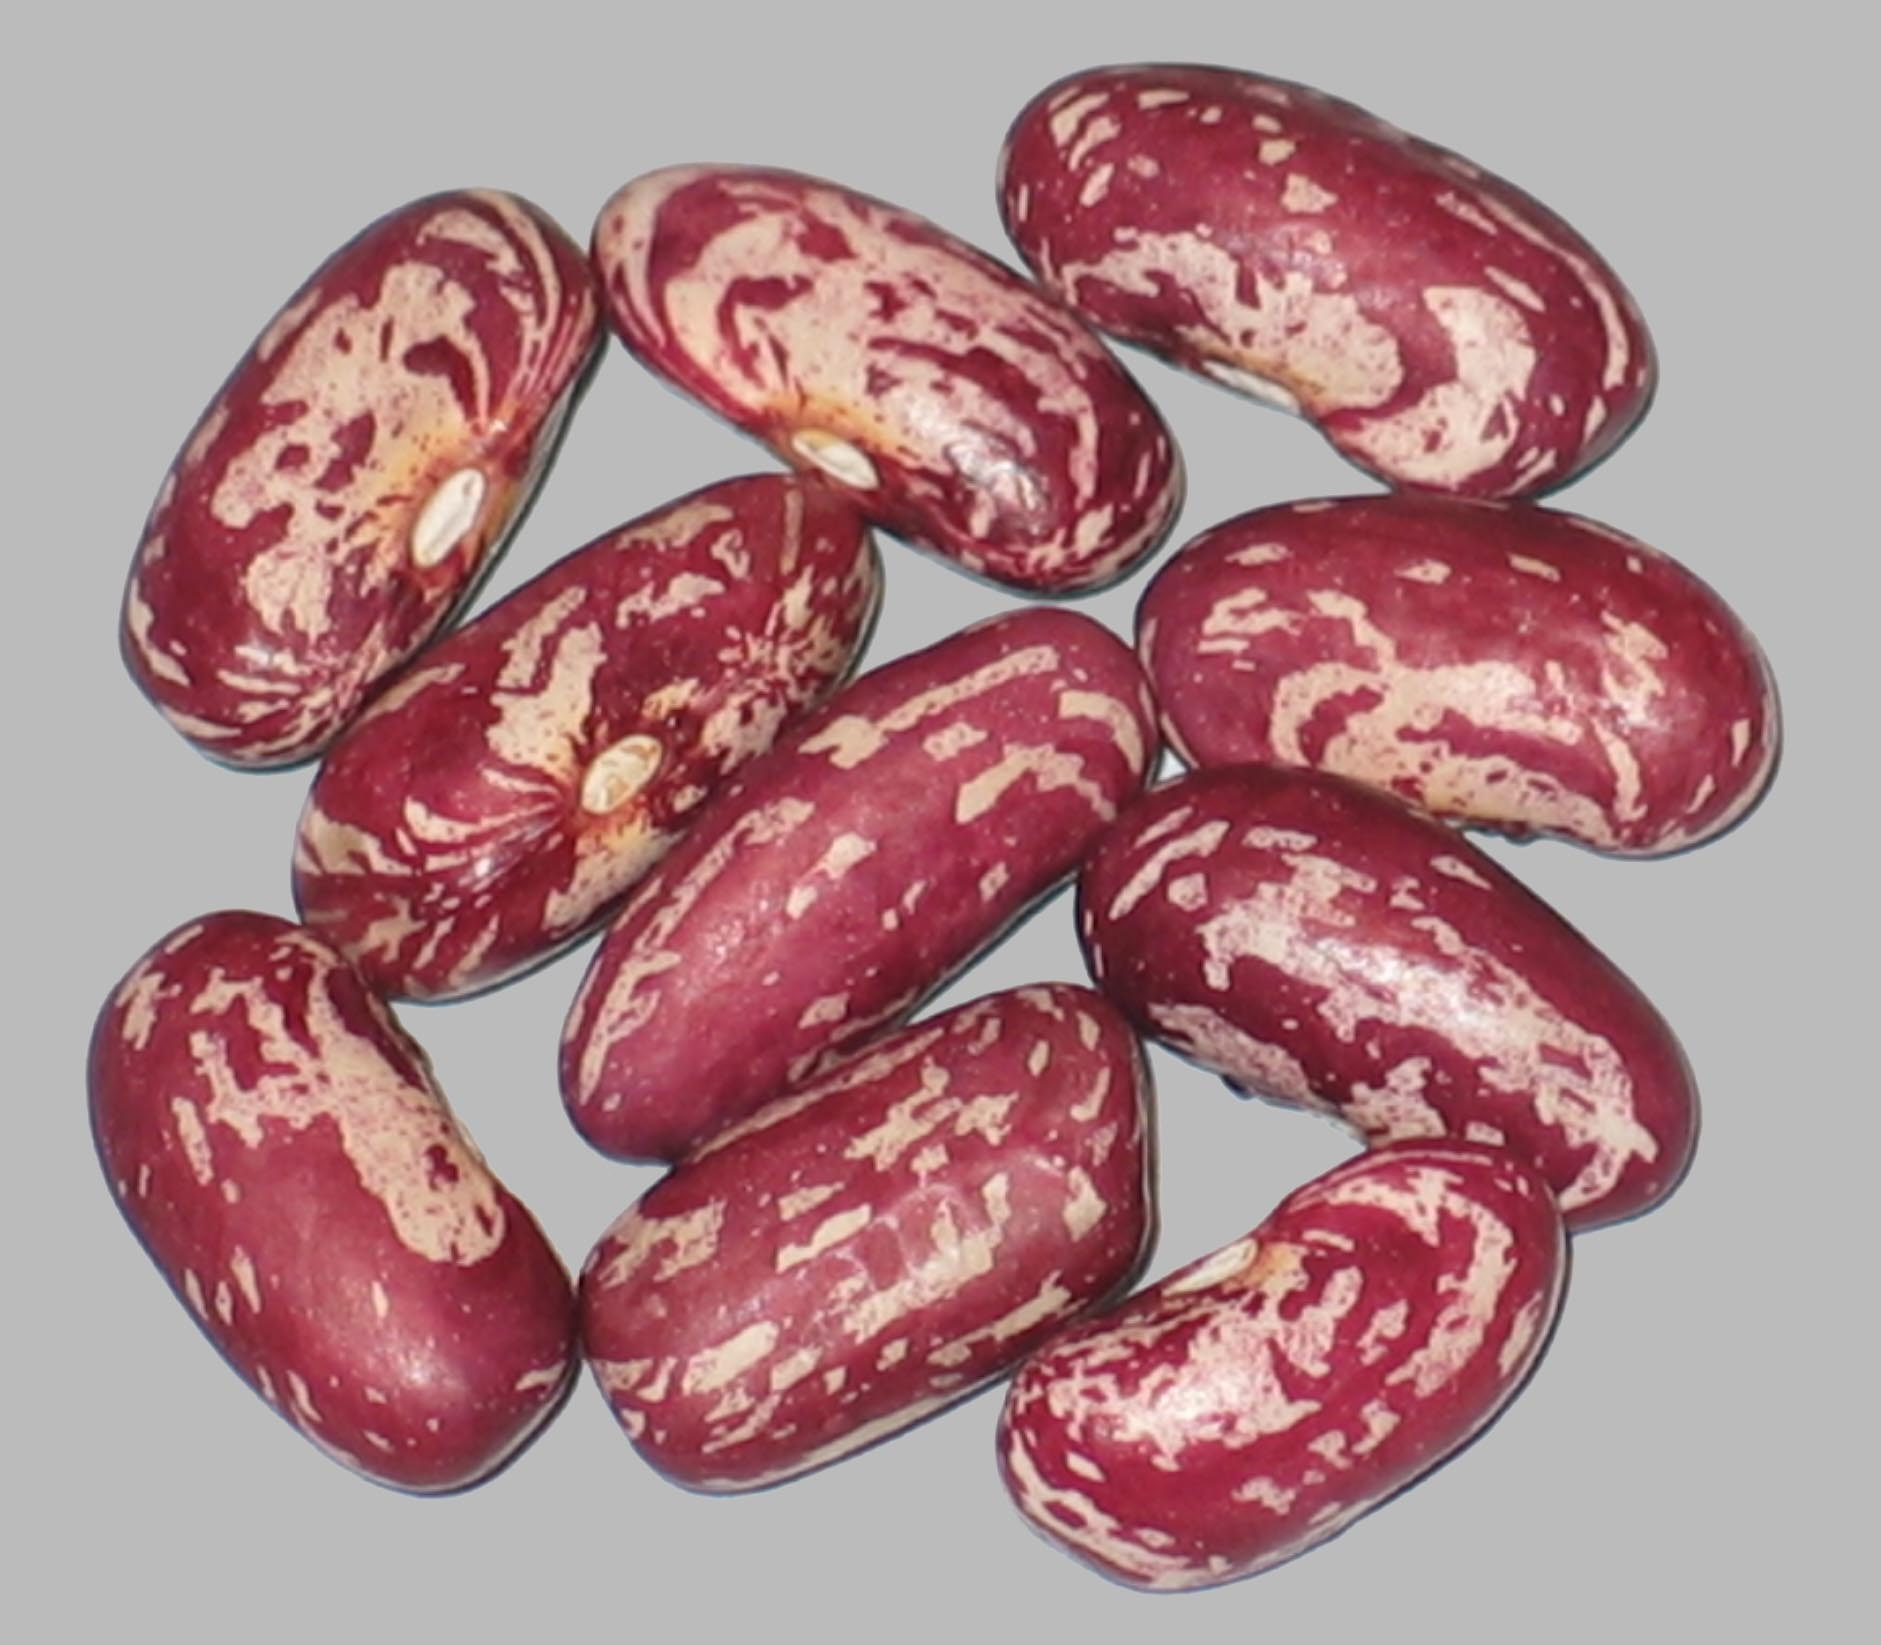 image of CIAT Bean G-8043  beans